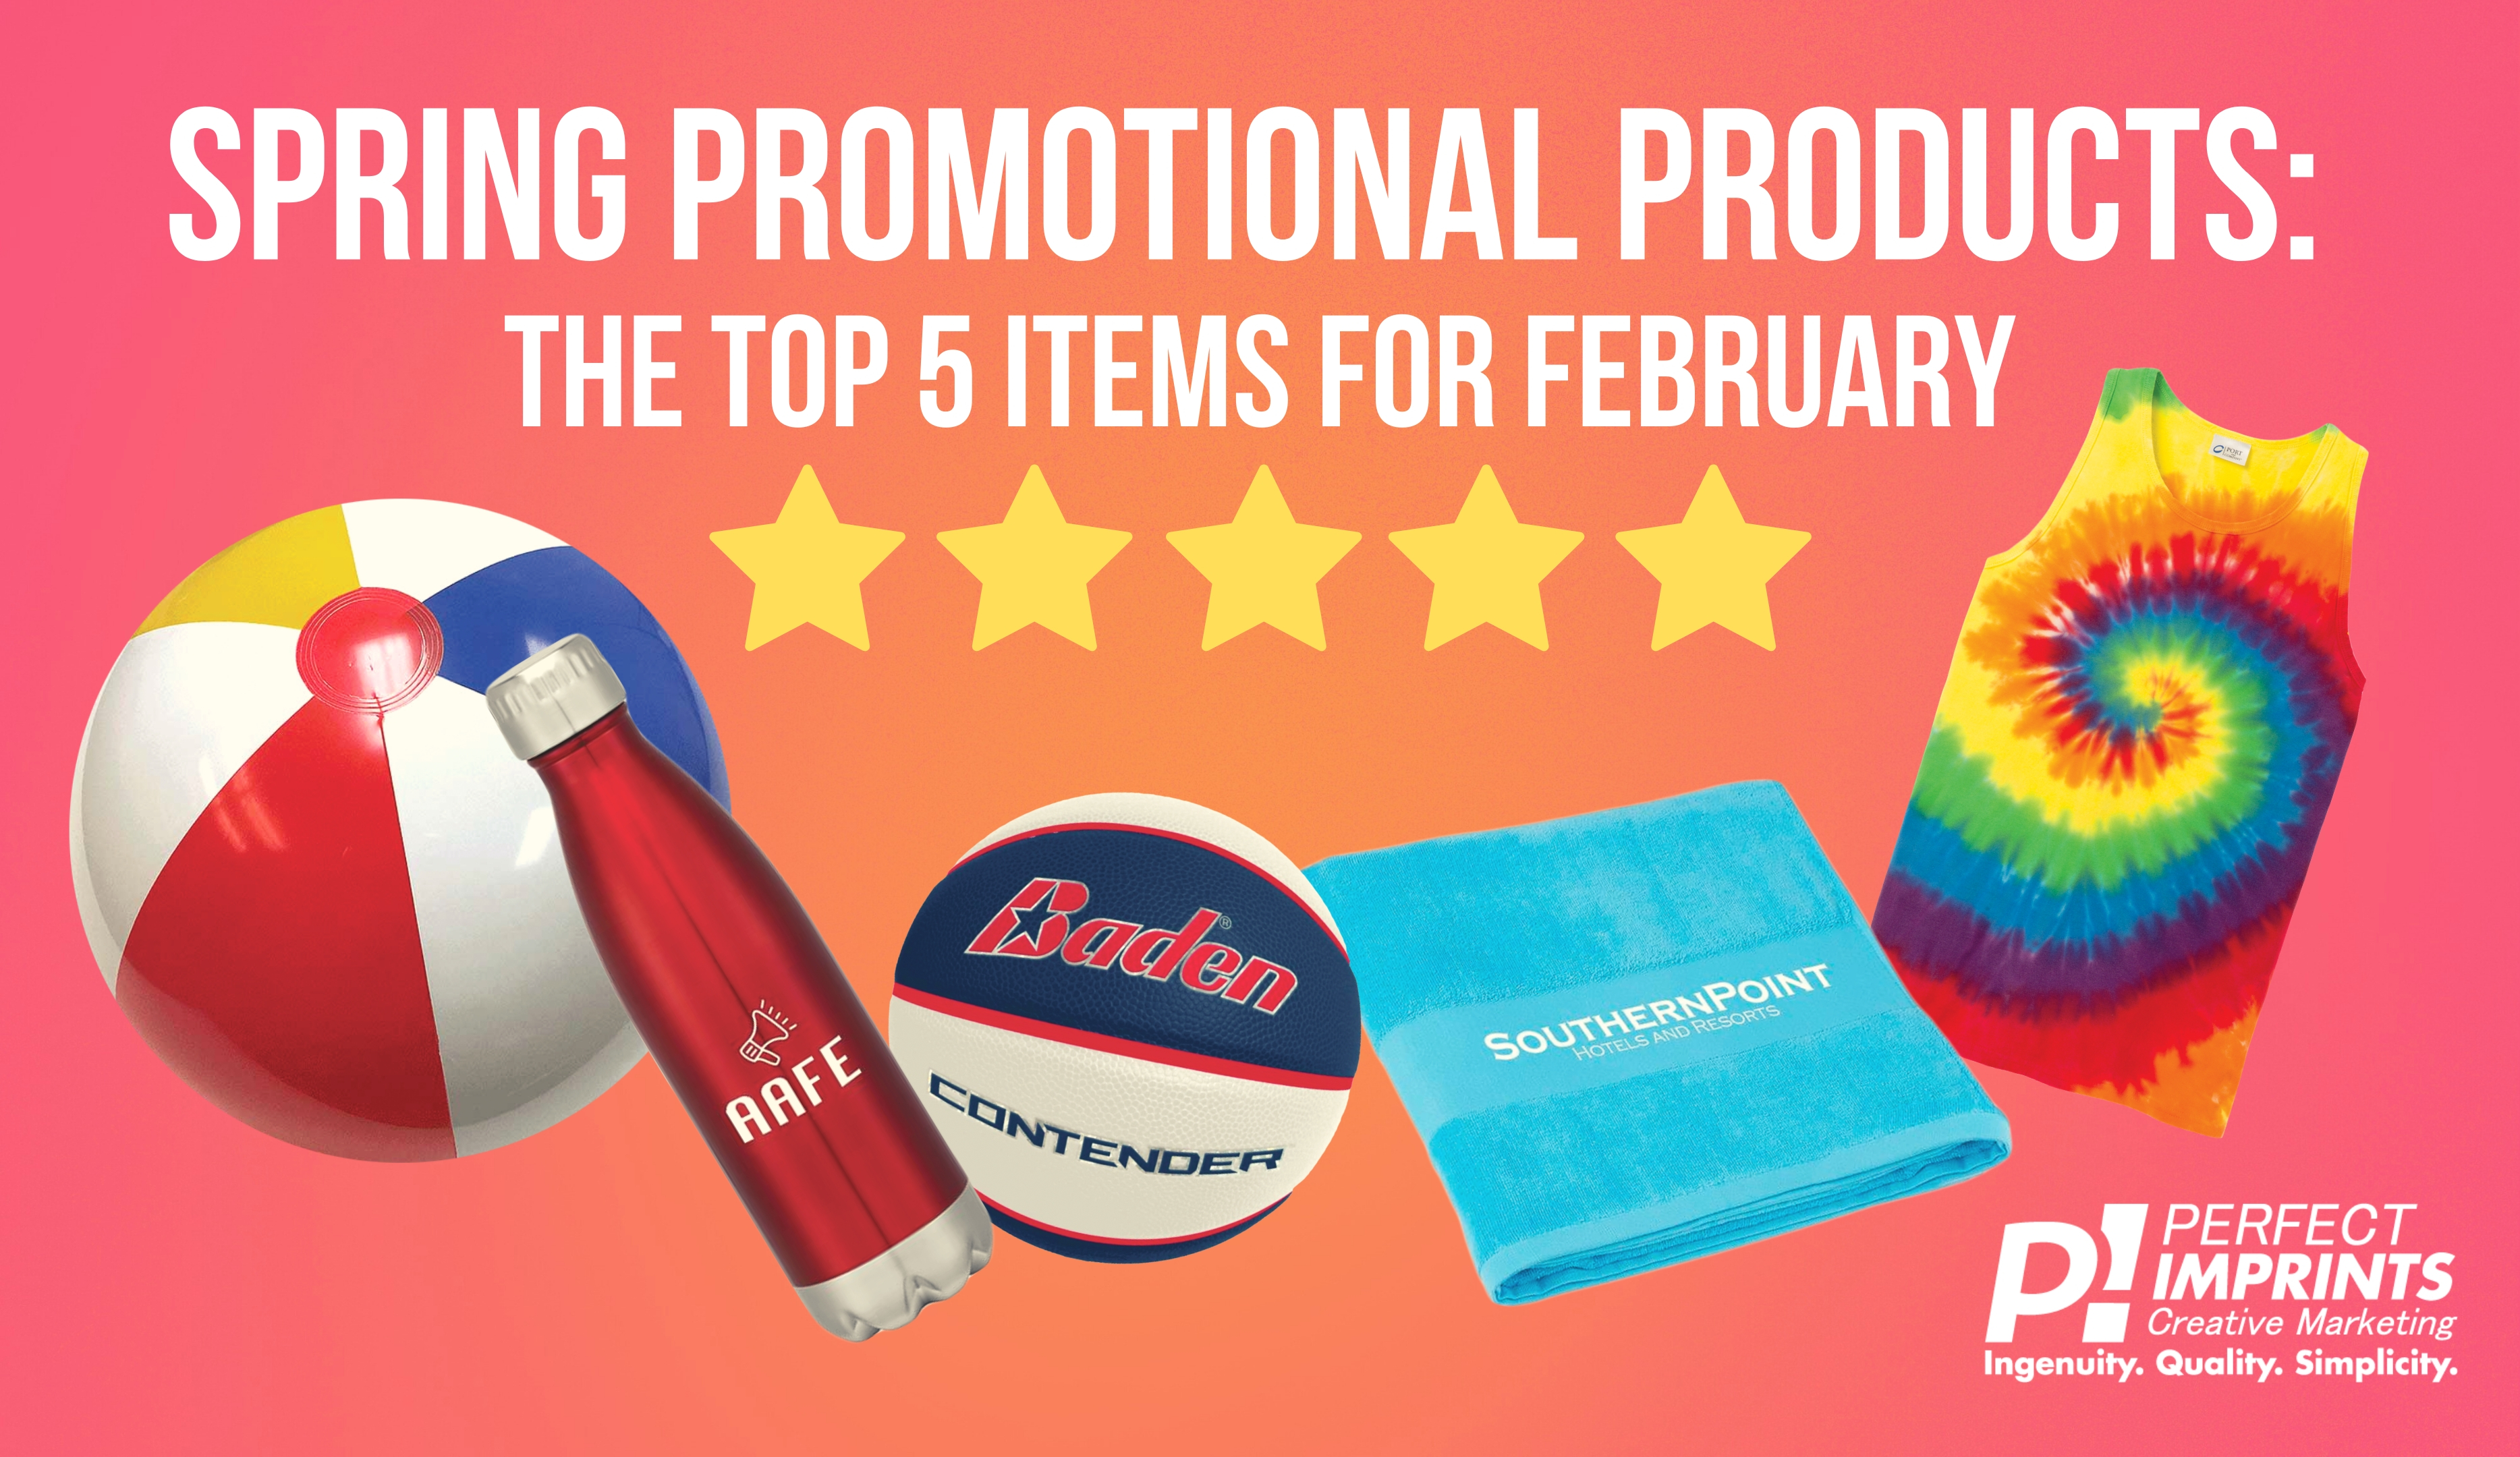 Spring Promotional Products: The Top 5 Items for February